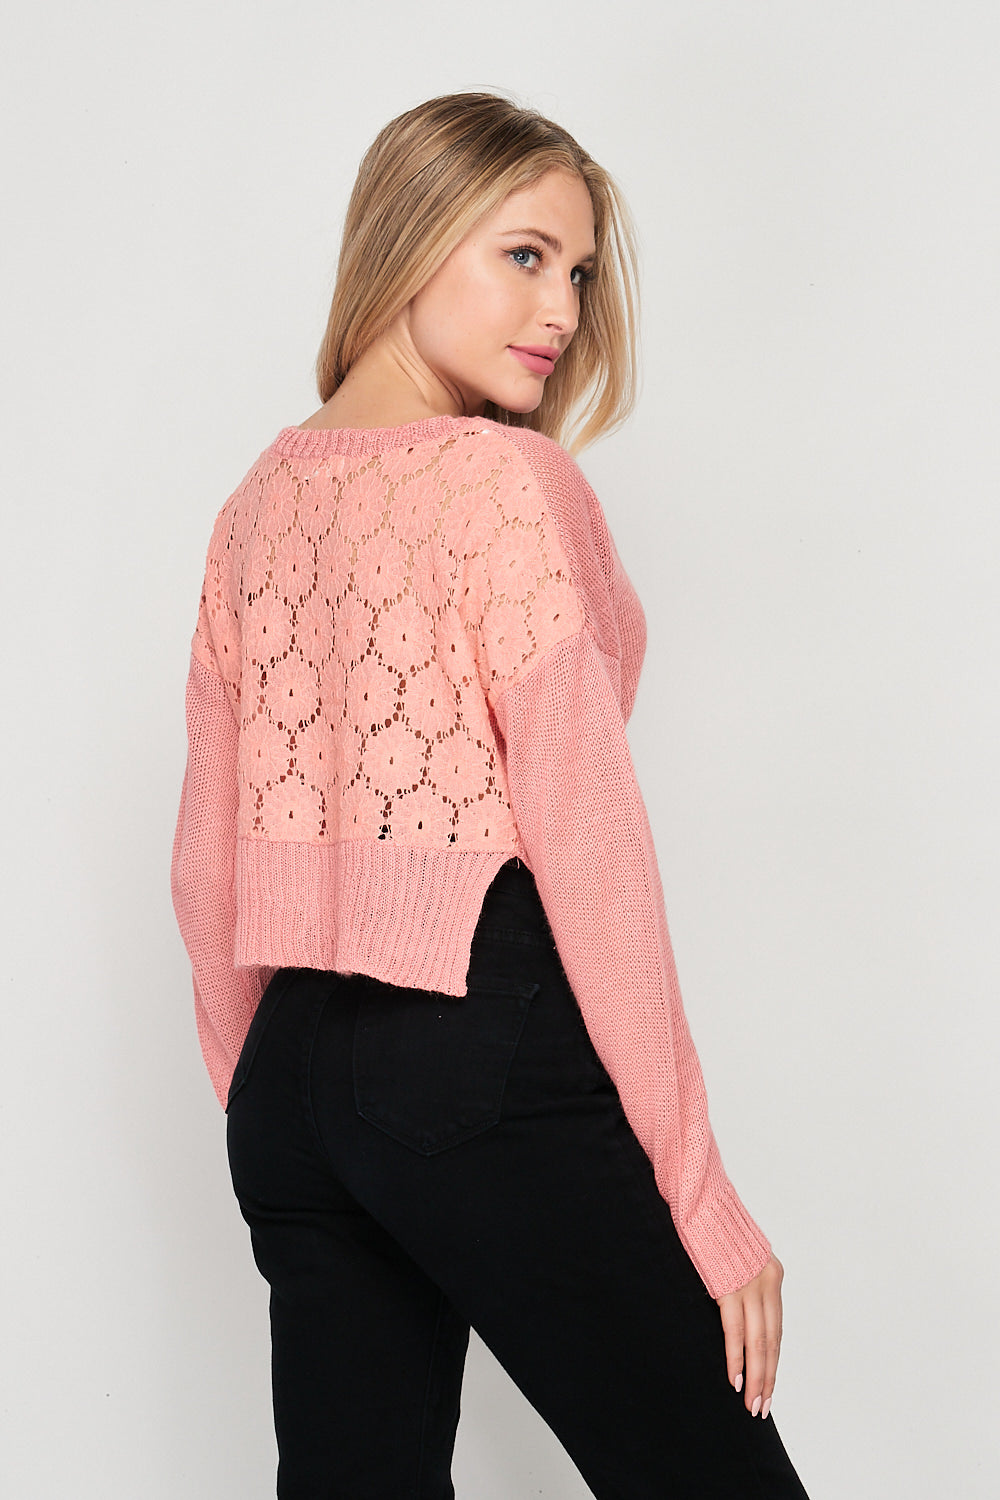 Blank Lewks | Crochet Lace-Back Long Sleeve V-Neck | Coral